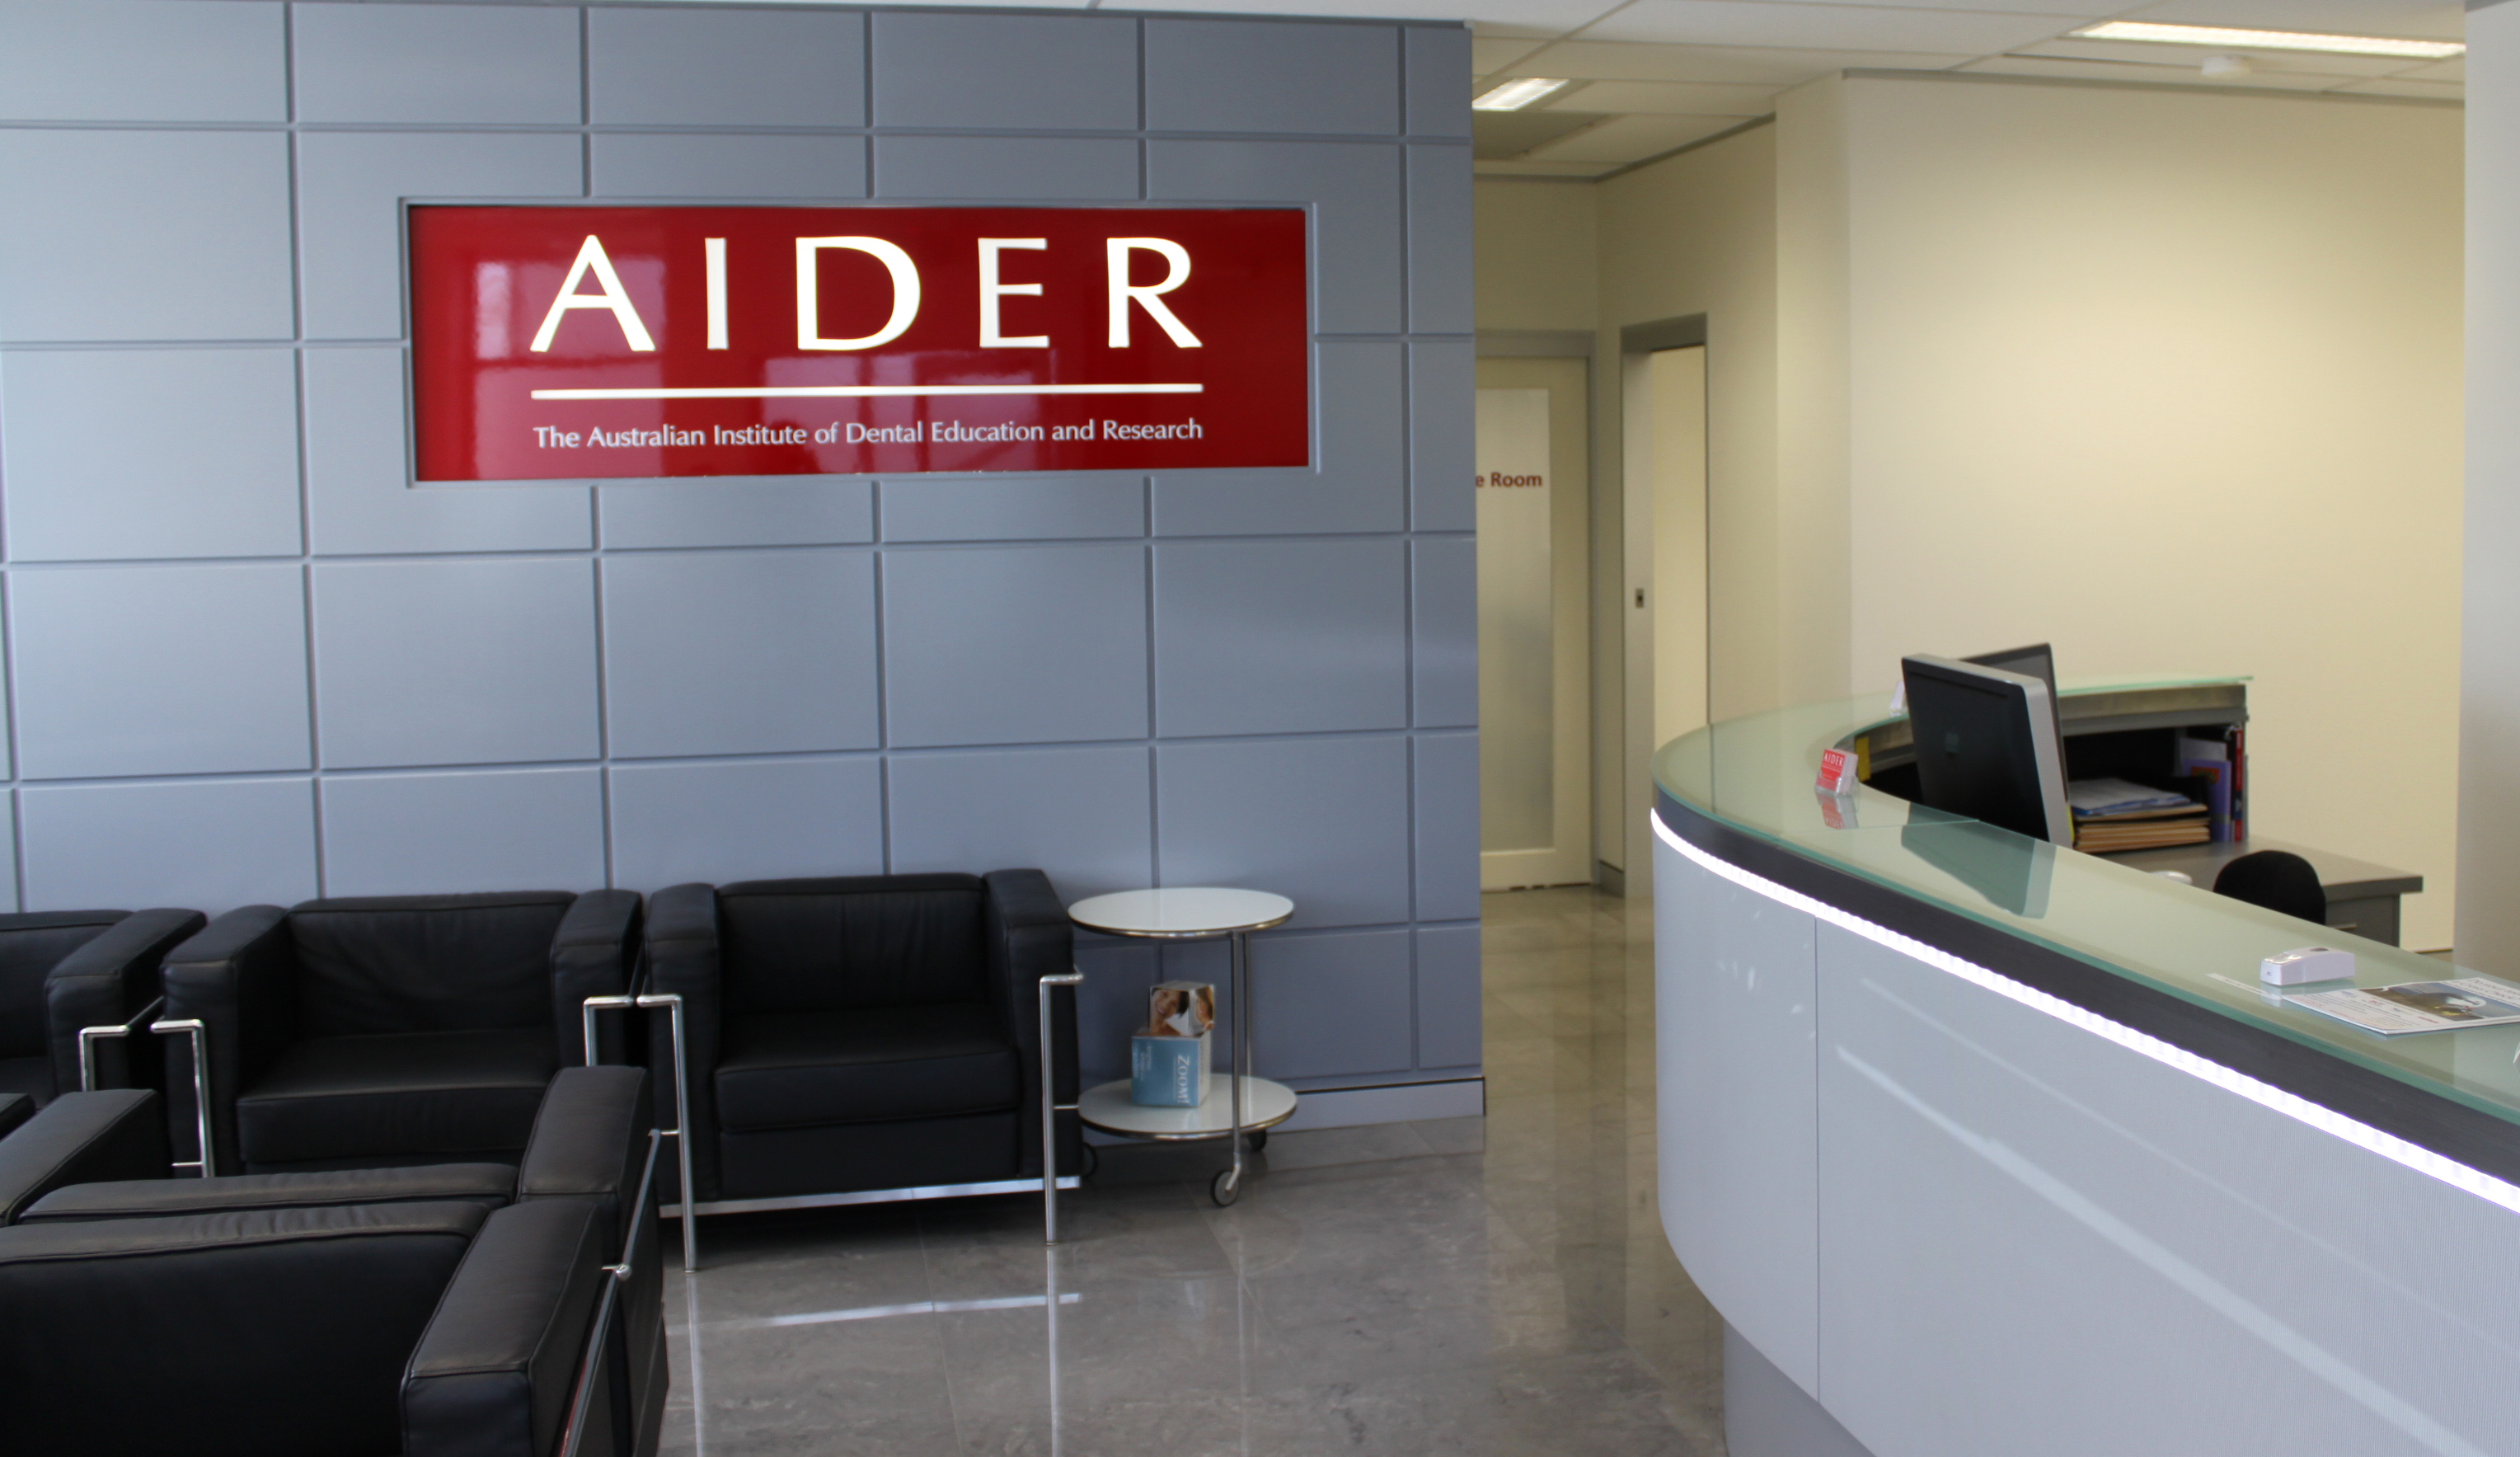 The Aider Reception